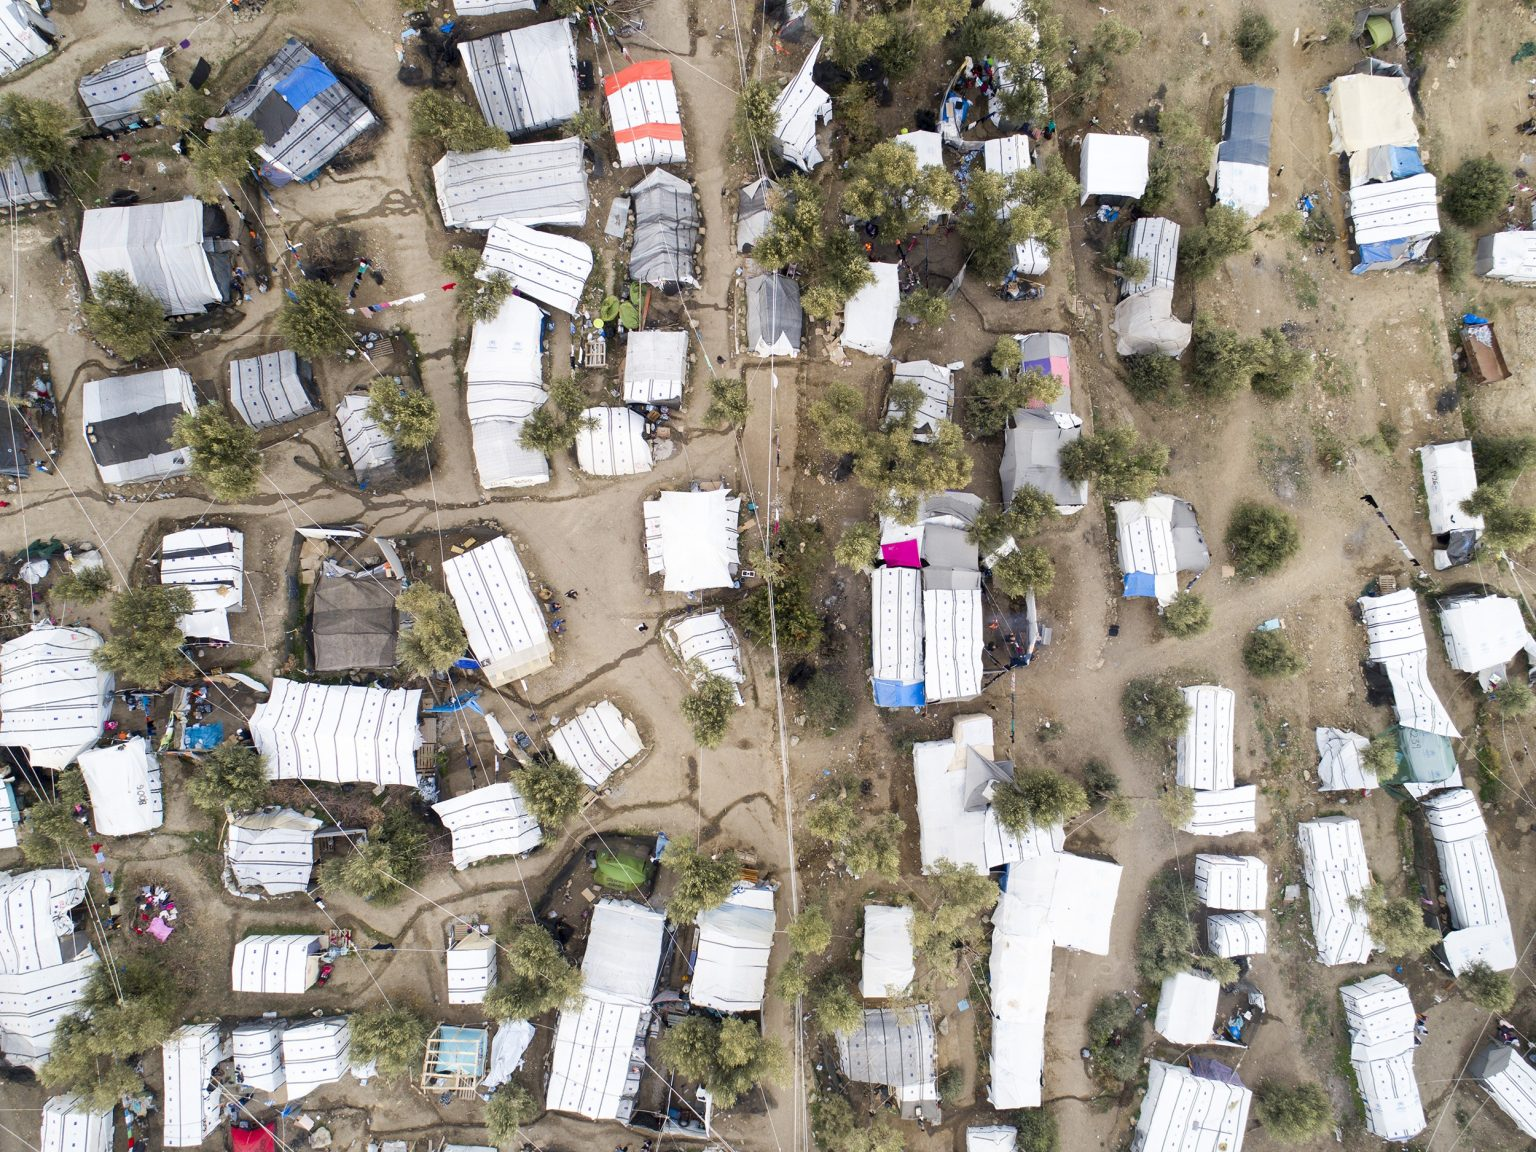 Moria, Greece. 5 November 2018. Tents in the unofficial migrant camp outside th governmental one. Located on the island of Lesbos, the refugee camp was built to host 3000 people, and is now giving shelter to about 13000 migrants, including 1000 minors.  Migrants keep arriving. In September 2019, 12,500 people arrived in Greece, and 40% of these came to Lesbos.